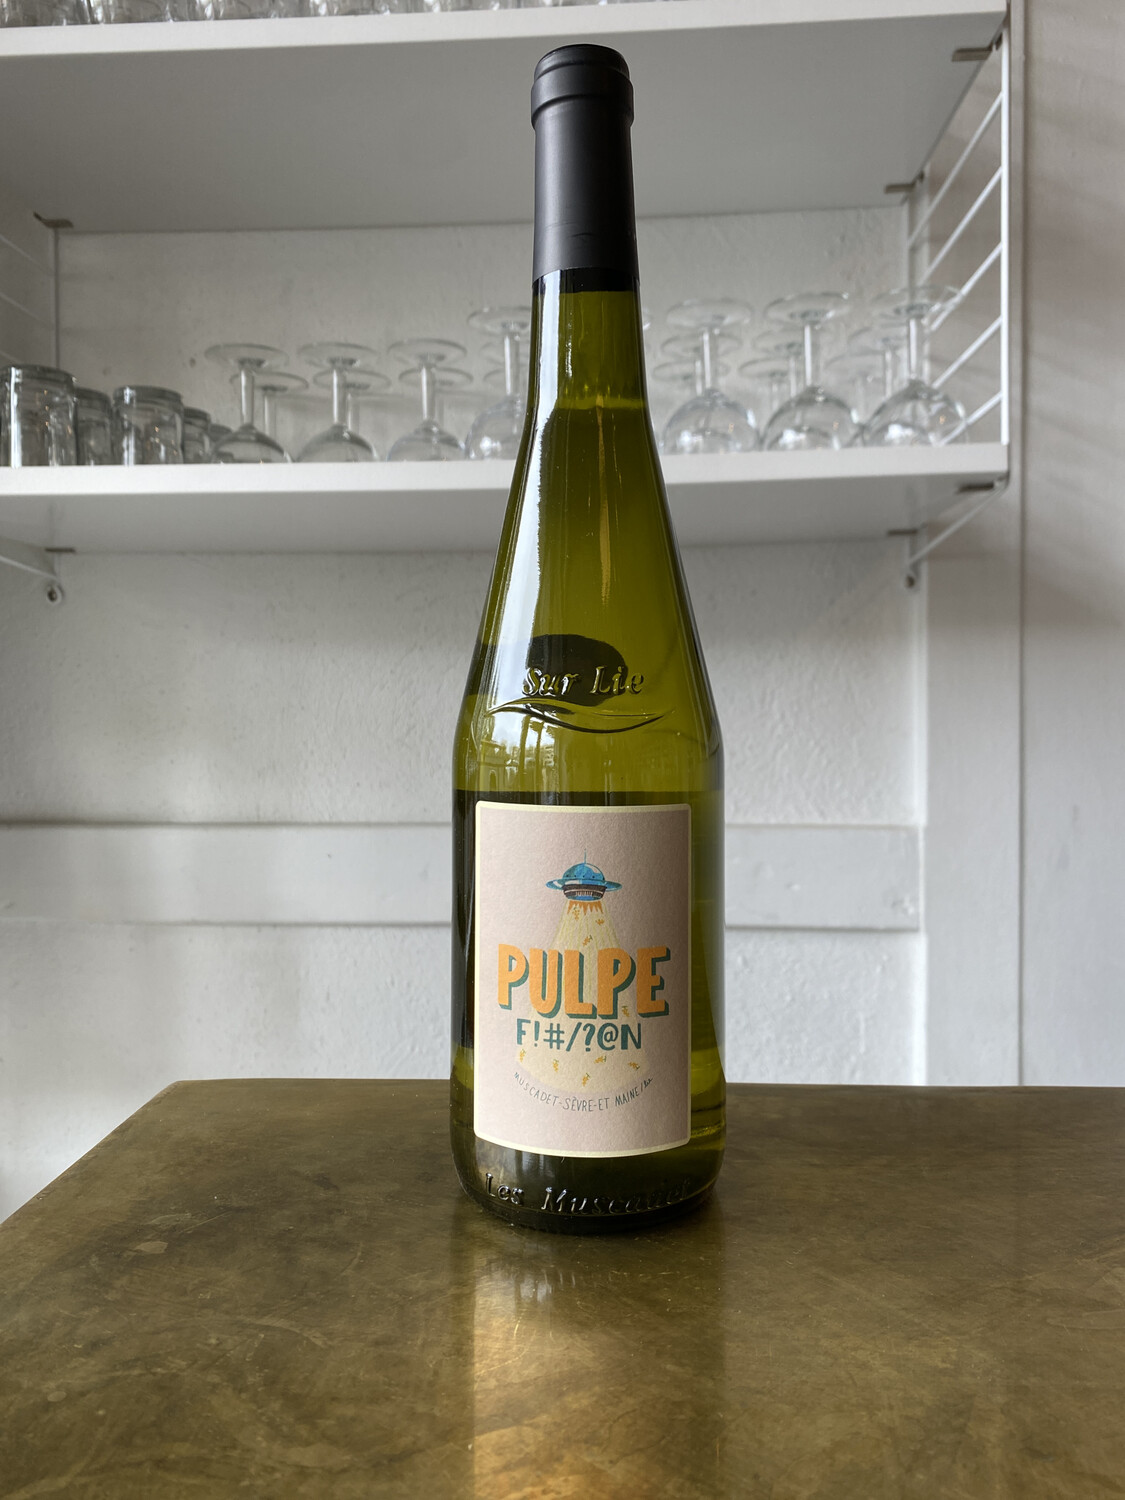 Pulpe Fiction, Muscadet Sèvre-et-Maine Lie (2019)